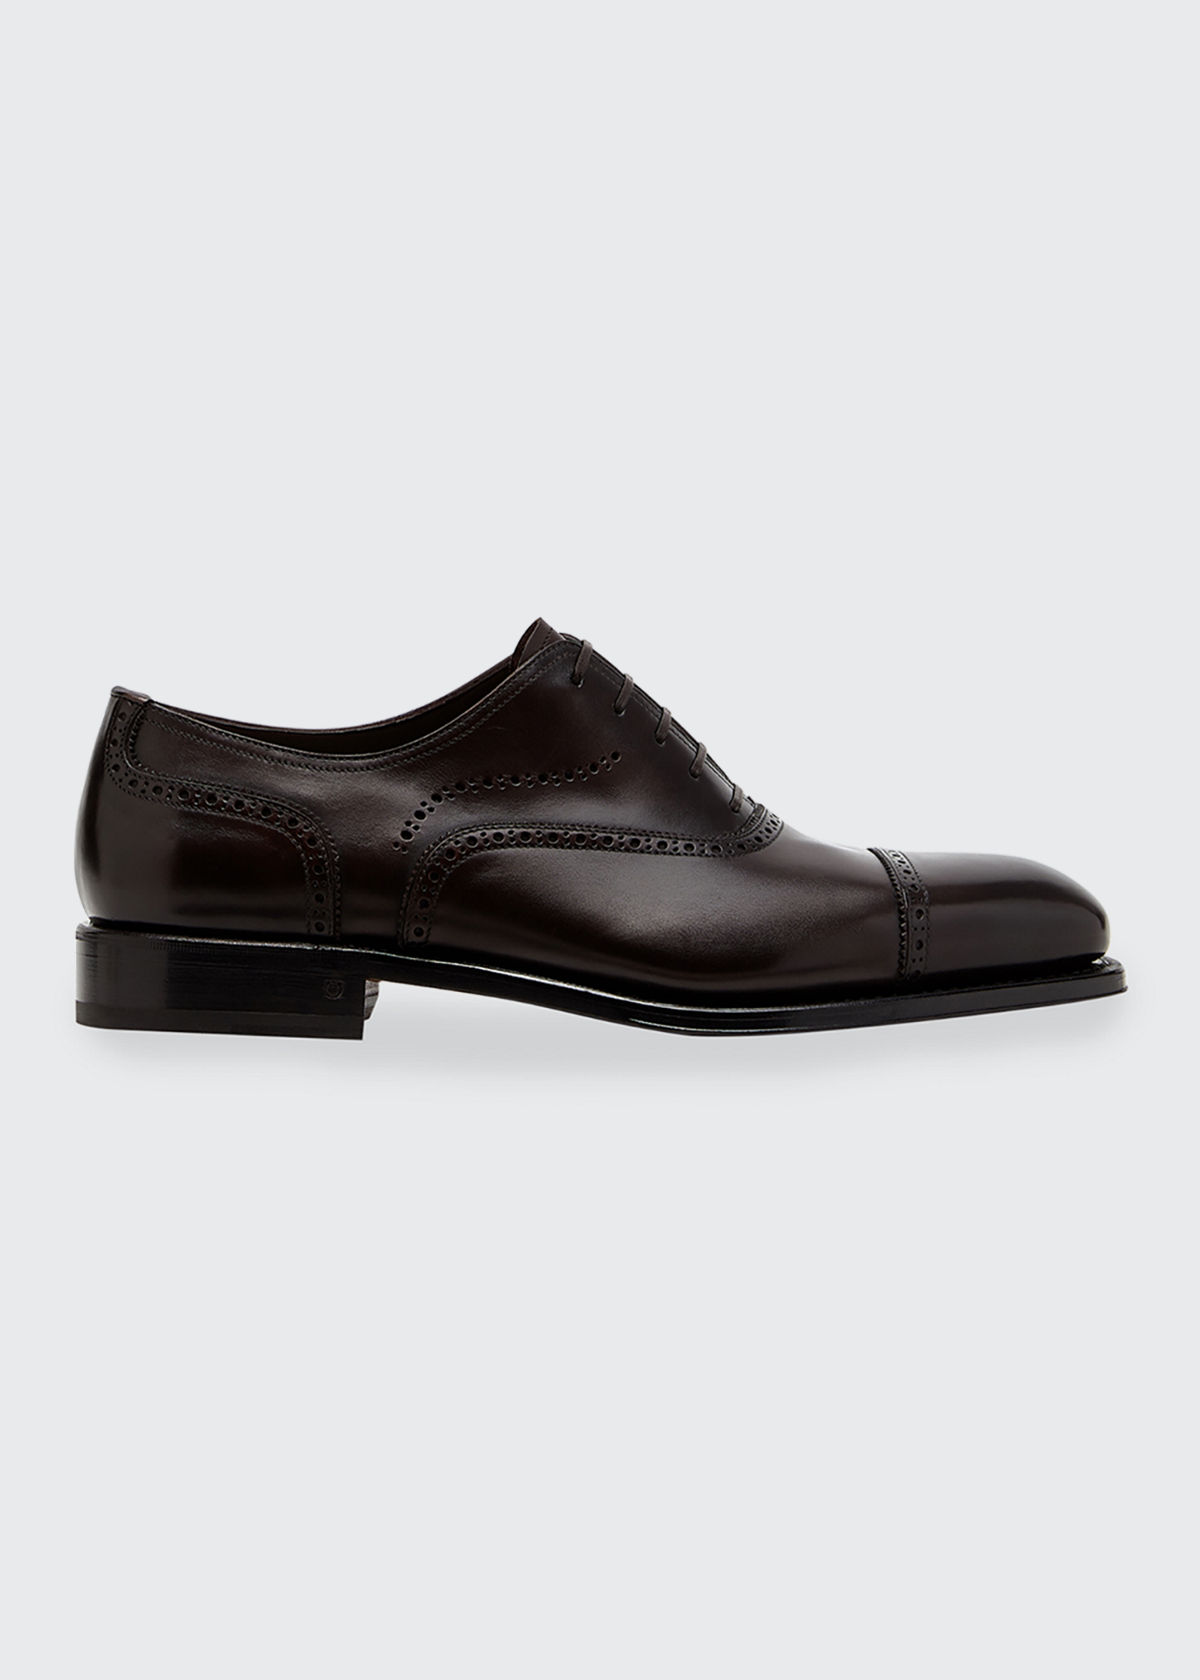 Salvatore Ferragamo MEN'S PIZZARRO BROGUE LEATHER LACE-UP DRESS SHOES